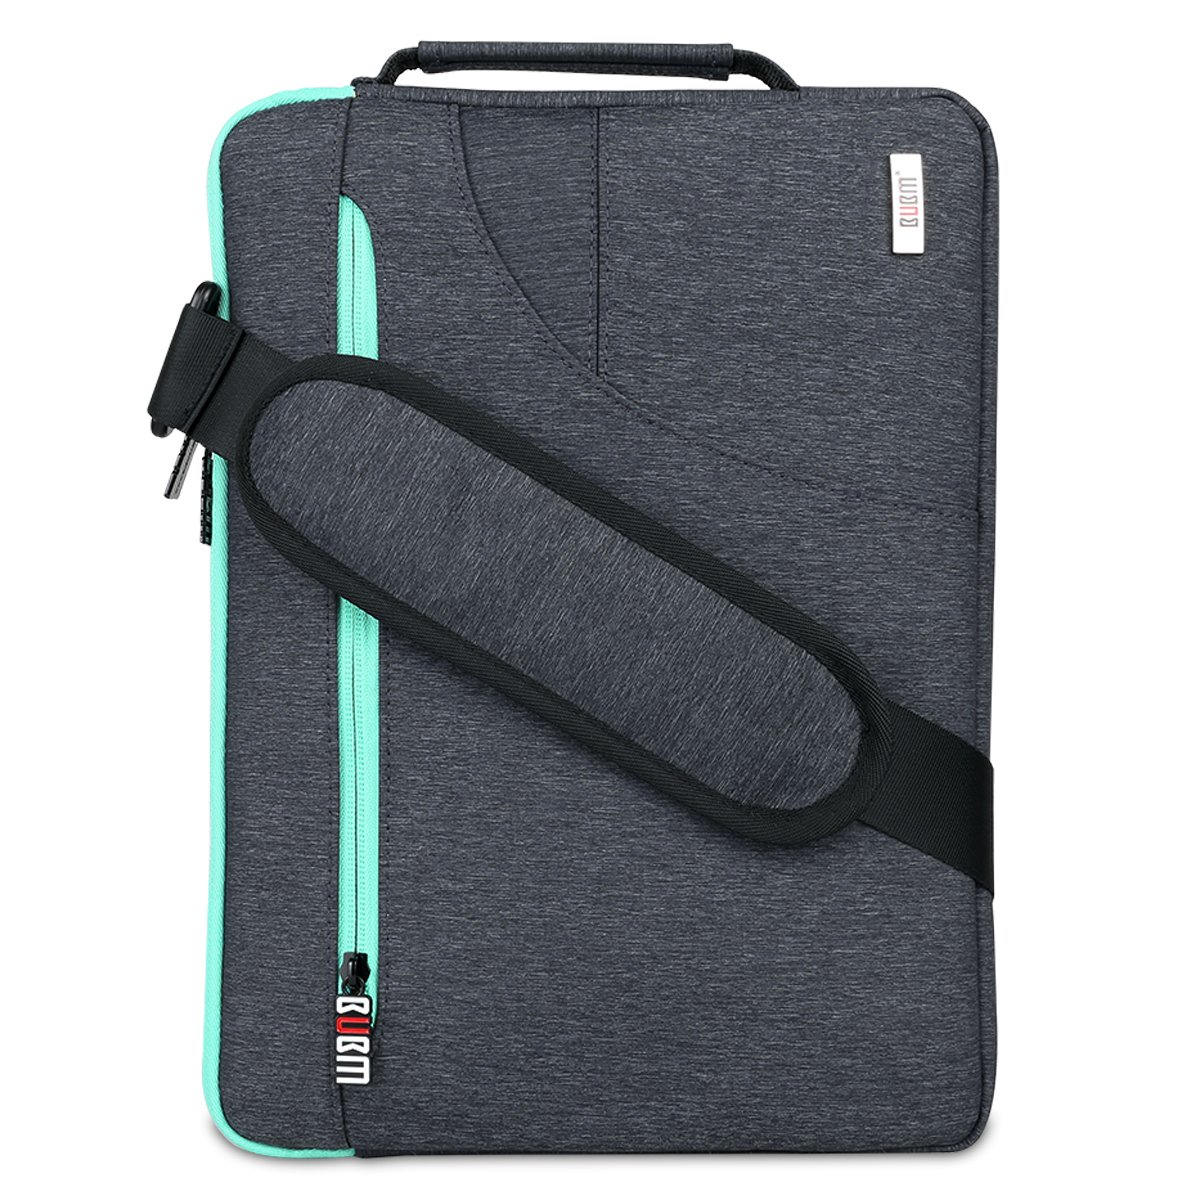 BUBM Travel Drop-Proof 13.3 inch Laptop Sleeve Shoulder Bag Compatible for 12inch New MacBook Pro Retina Air 12.9 inch iPad Pro Chromebook Notebook Tablet